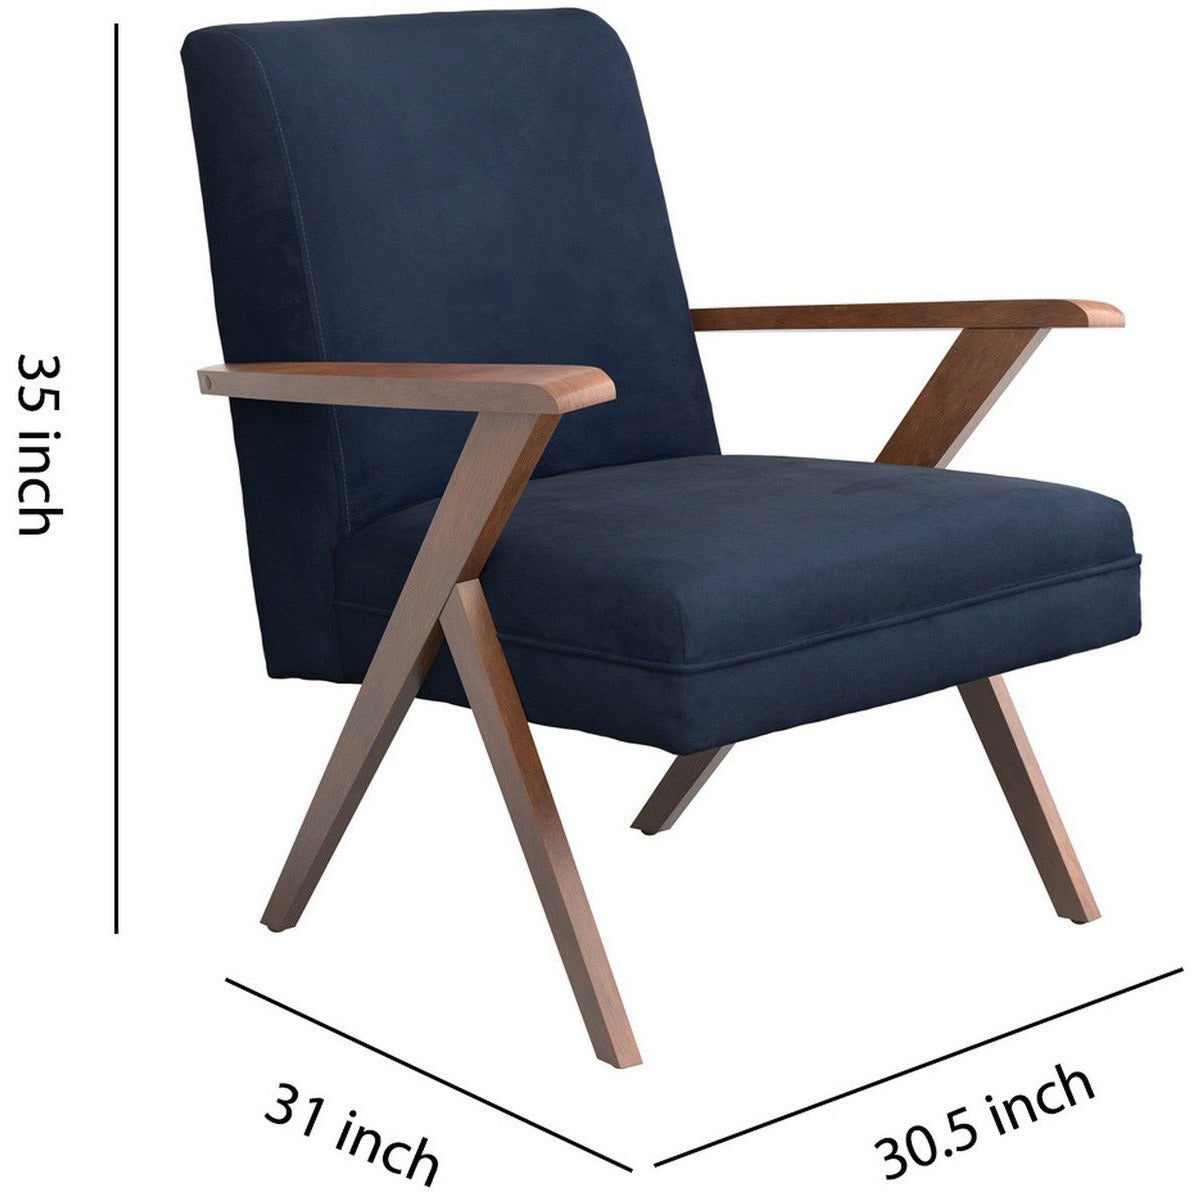 Arm Chairs - Contemporary Dual Tone Wooden Armchair With Padded Seat, Blue And Brown